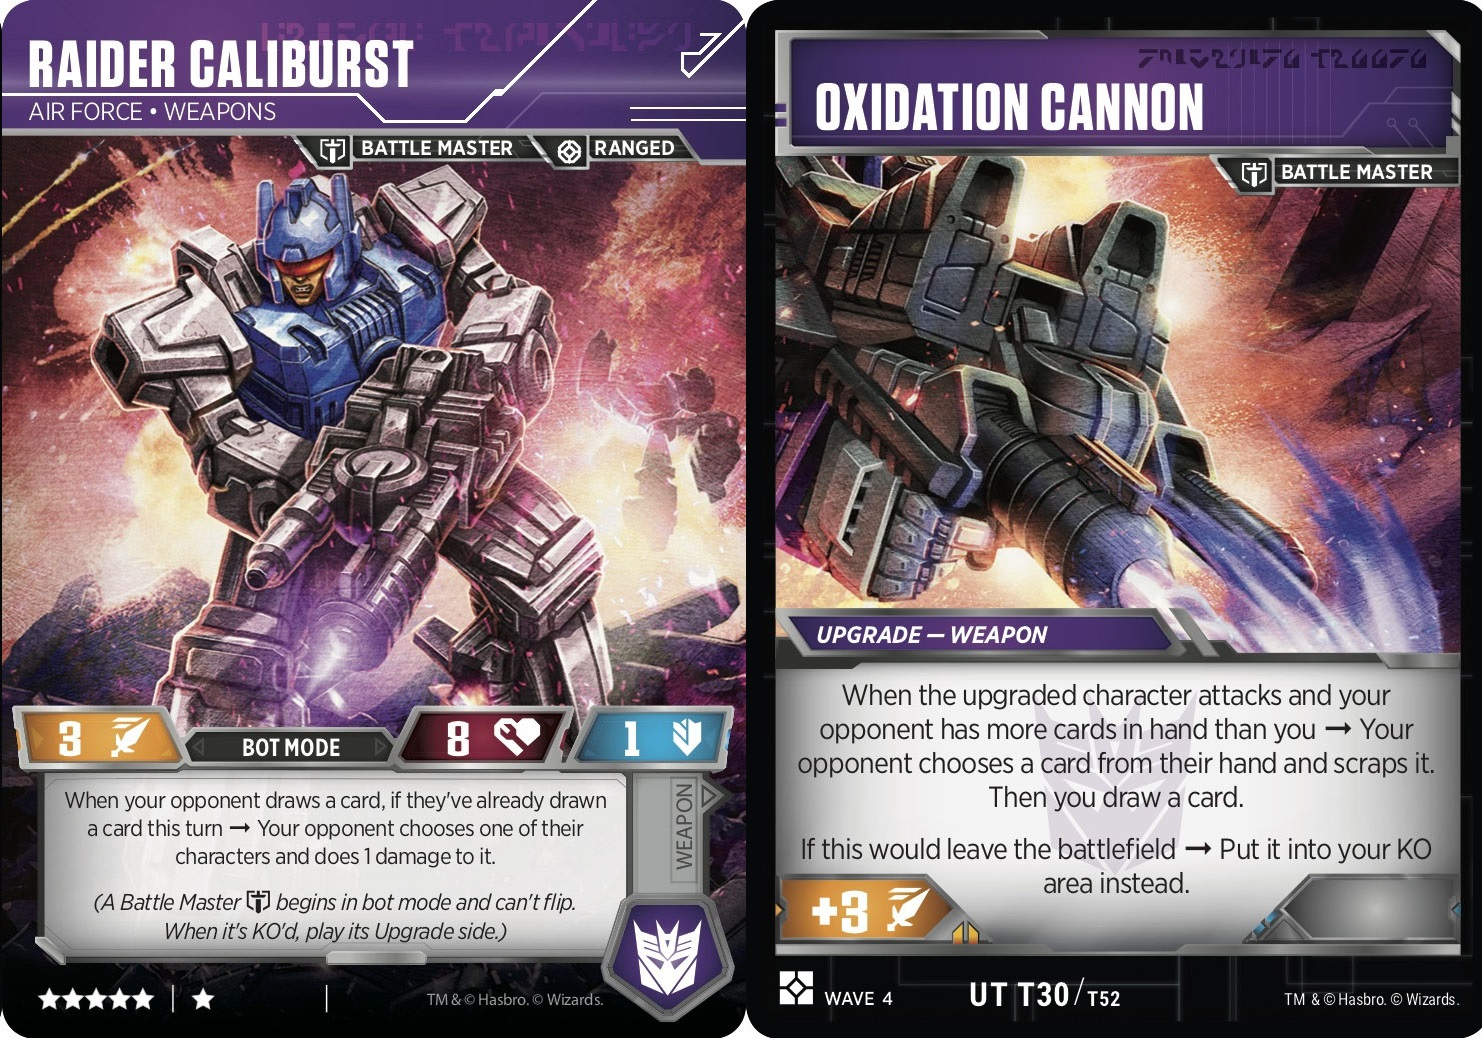 Raider Caliburst // Air Force Weapons